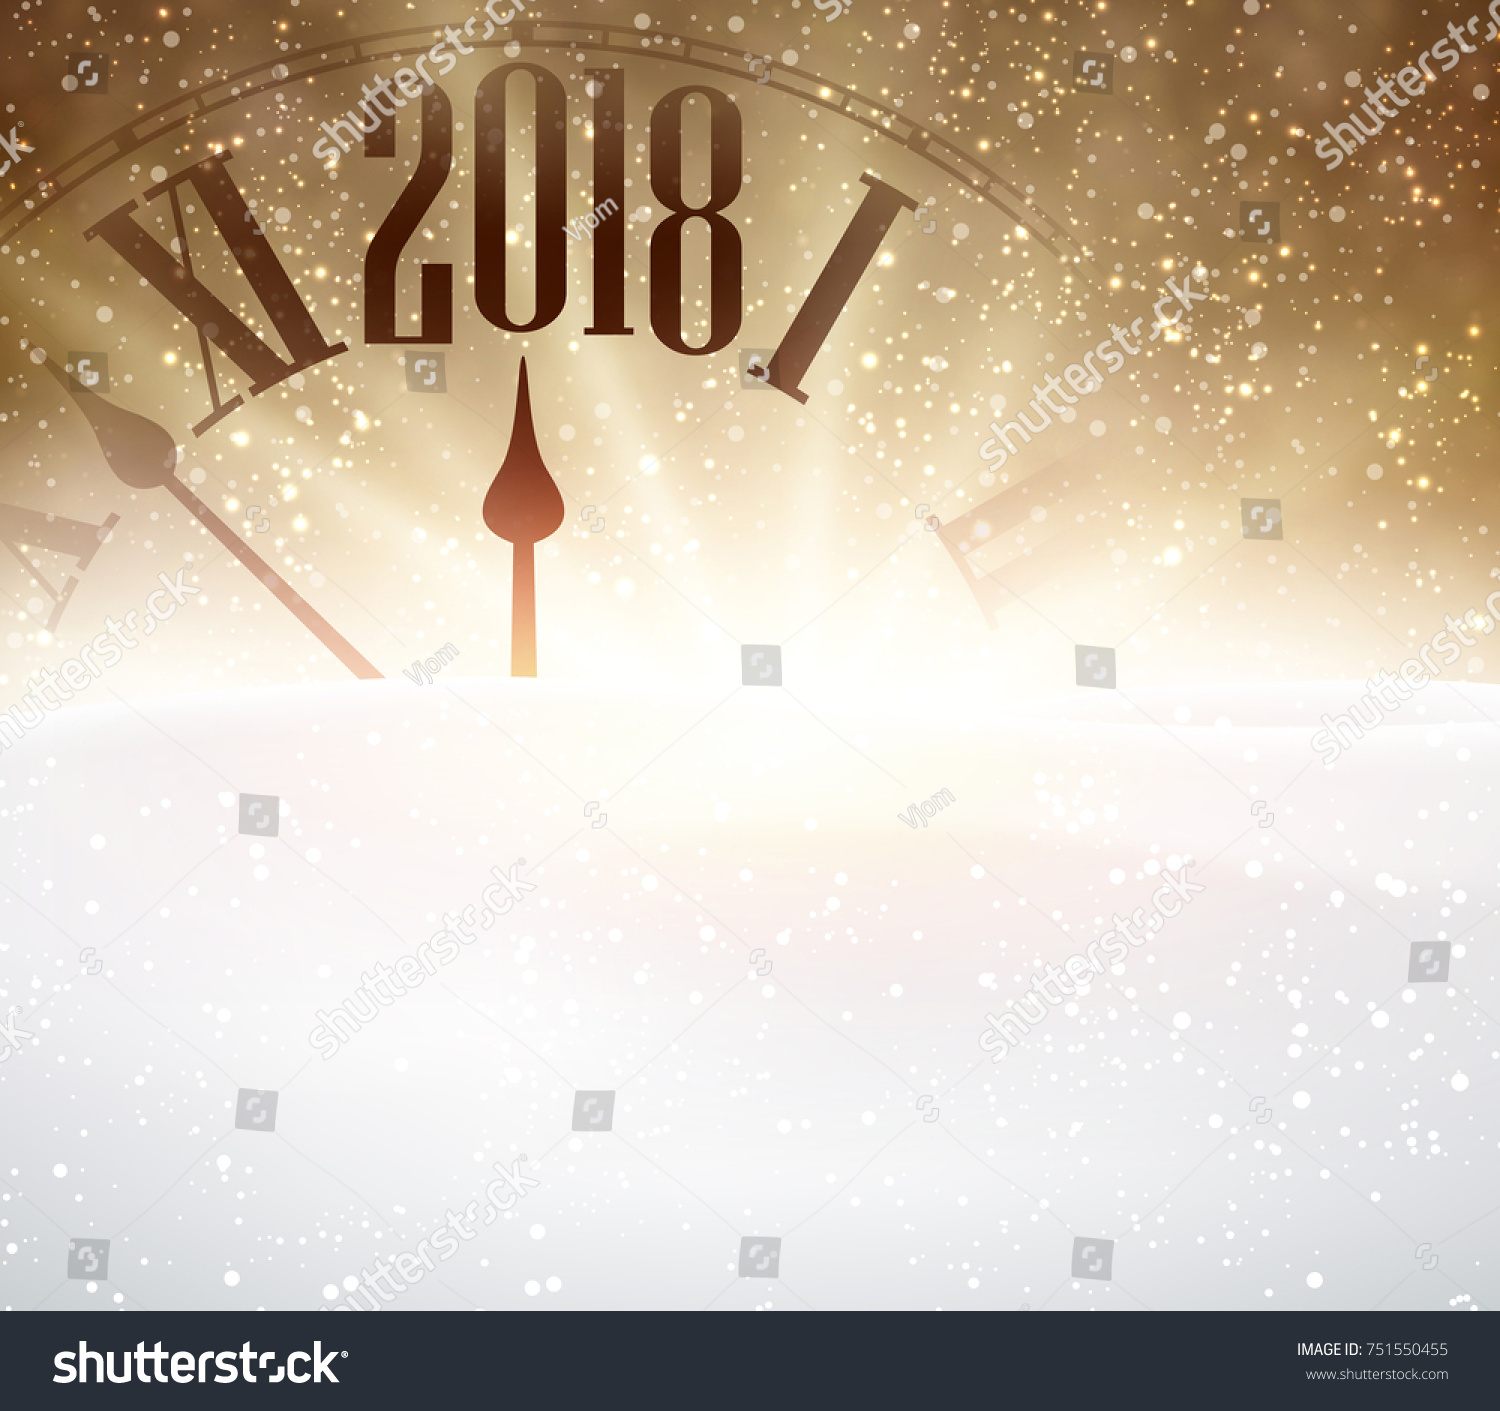 golden 2018 new year background with clock and snow vector illustration